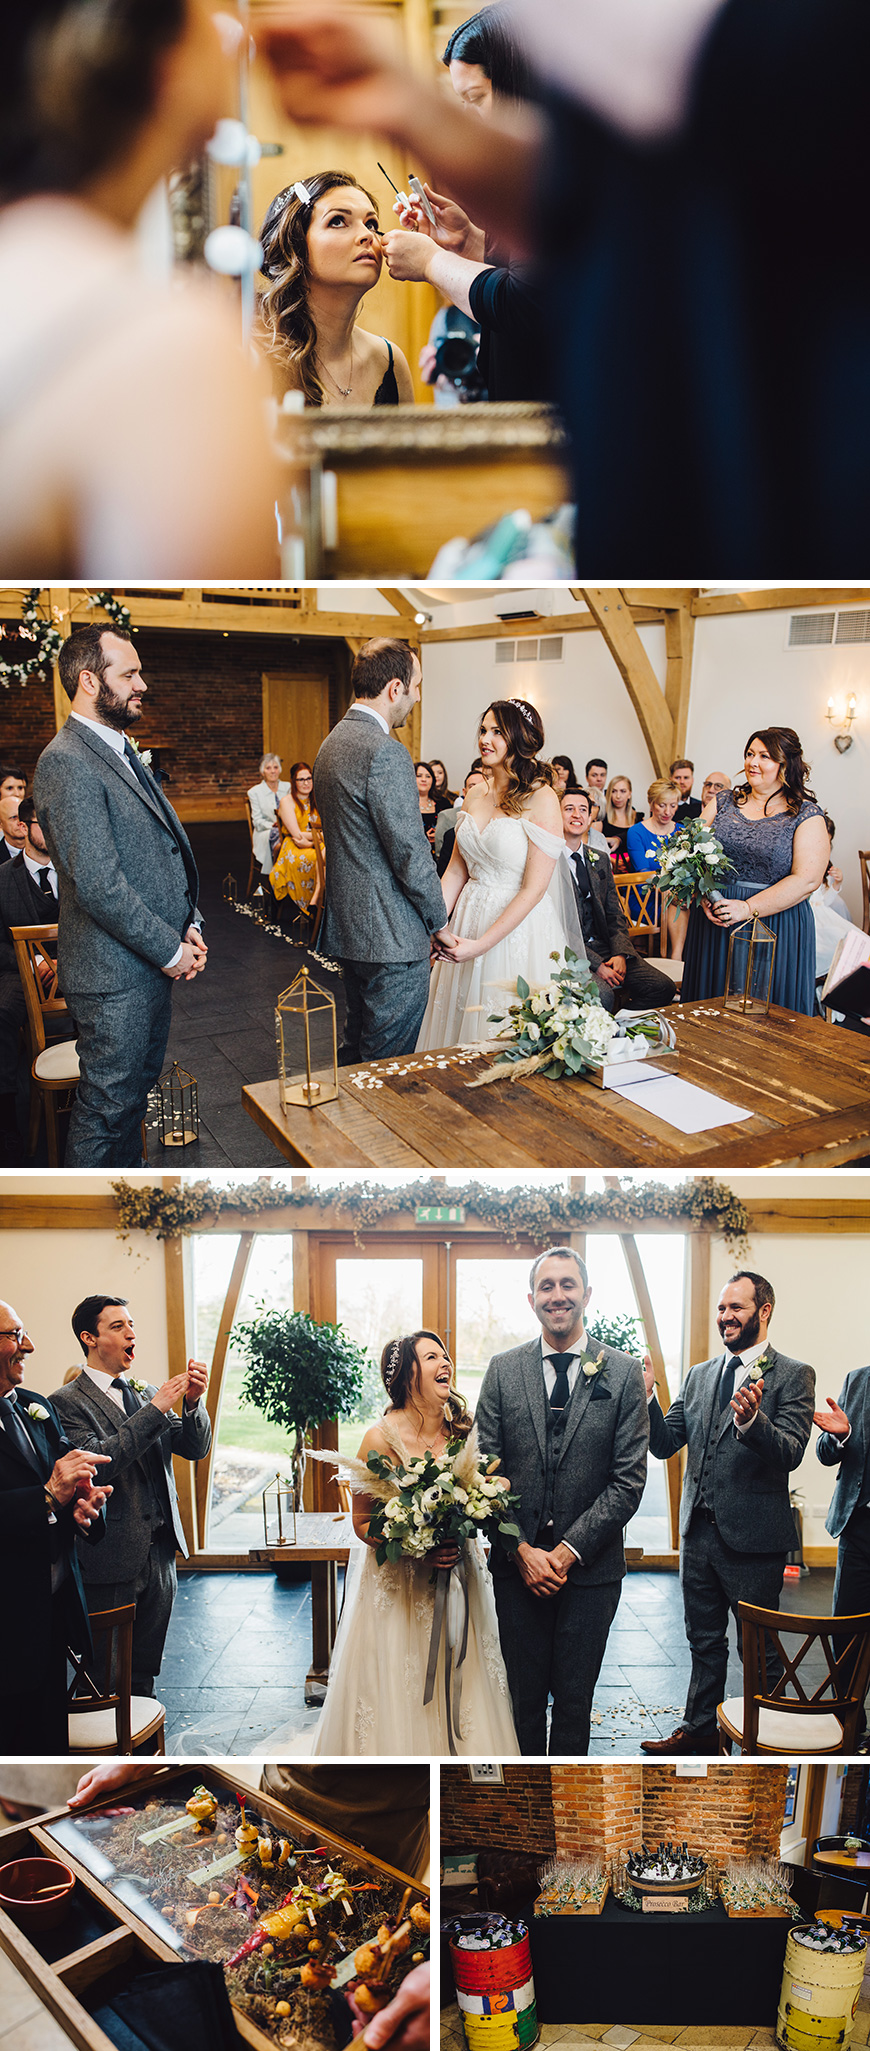 Real Wedding - Rosheen and Ben's Beautiful Spring Wedding At Mythe Barn | CHWV